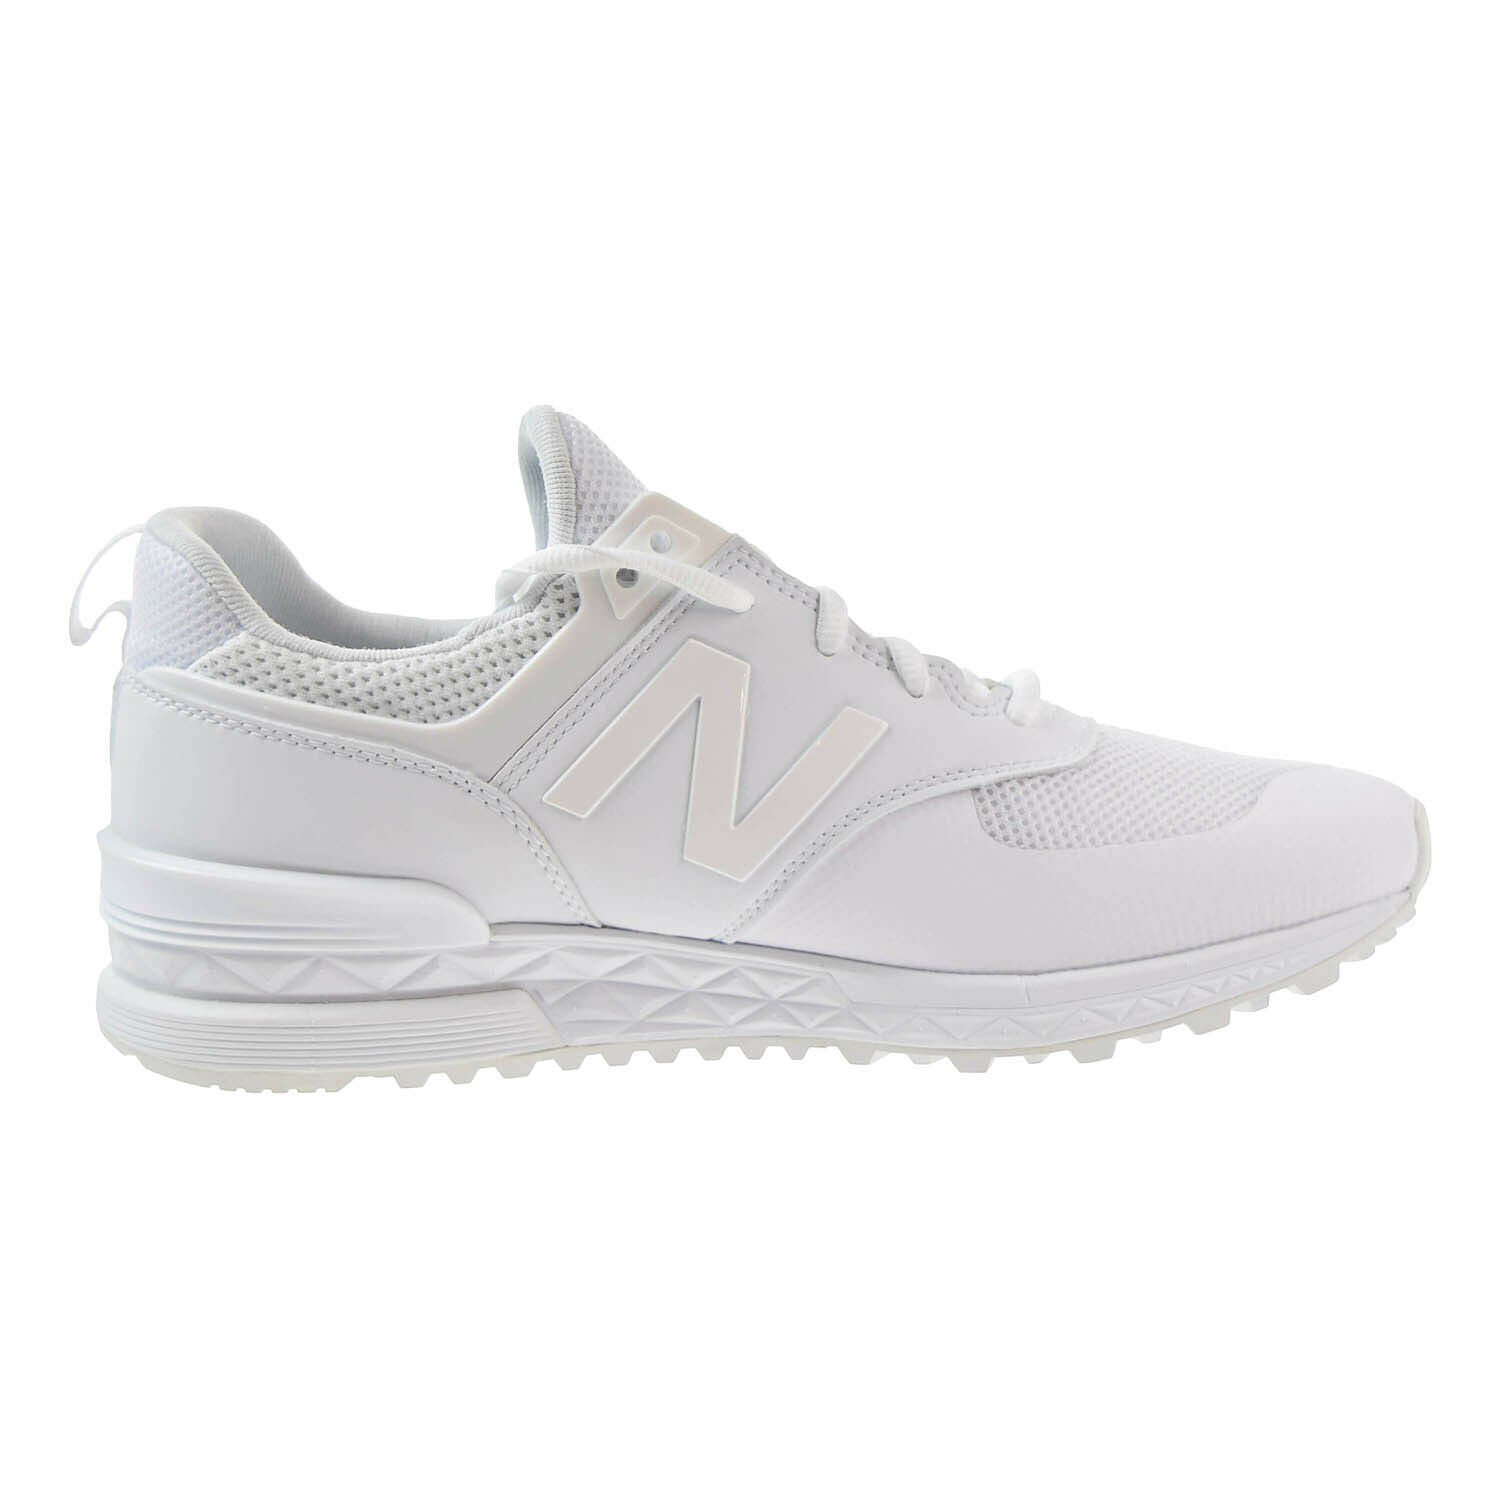 New Balance Running Mens shoes White MS574SWT